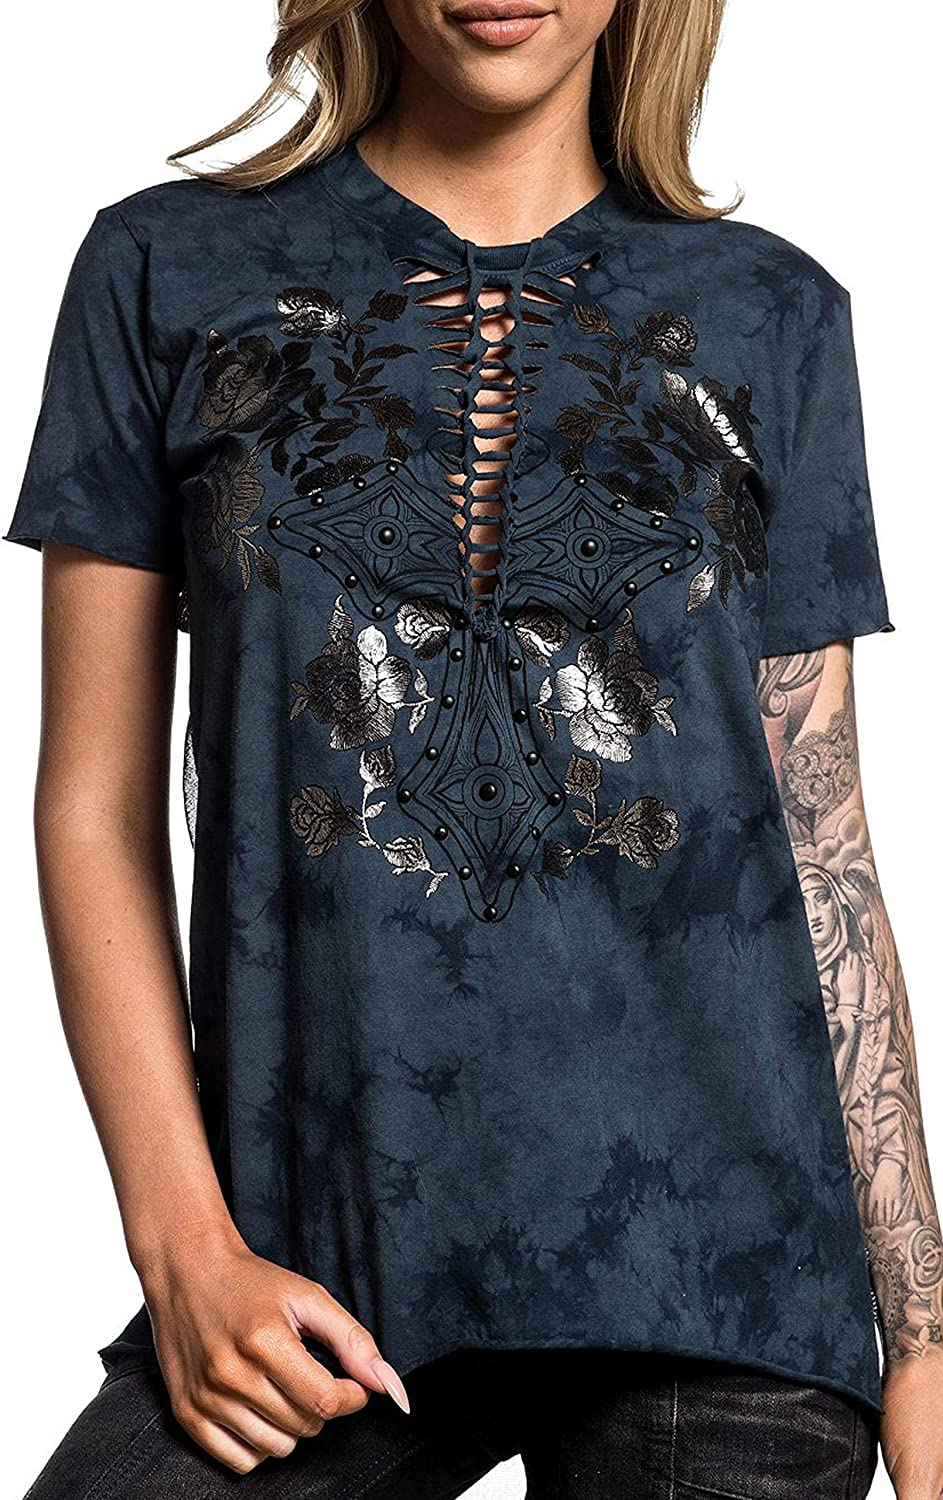 Affliction Bella Short Sleeve Fashion Graphic T-shirt Top for Women